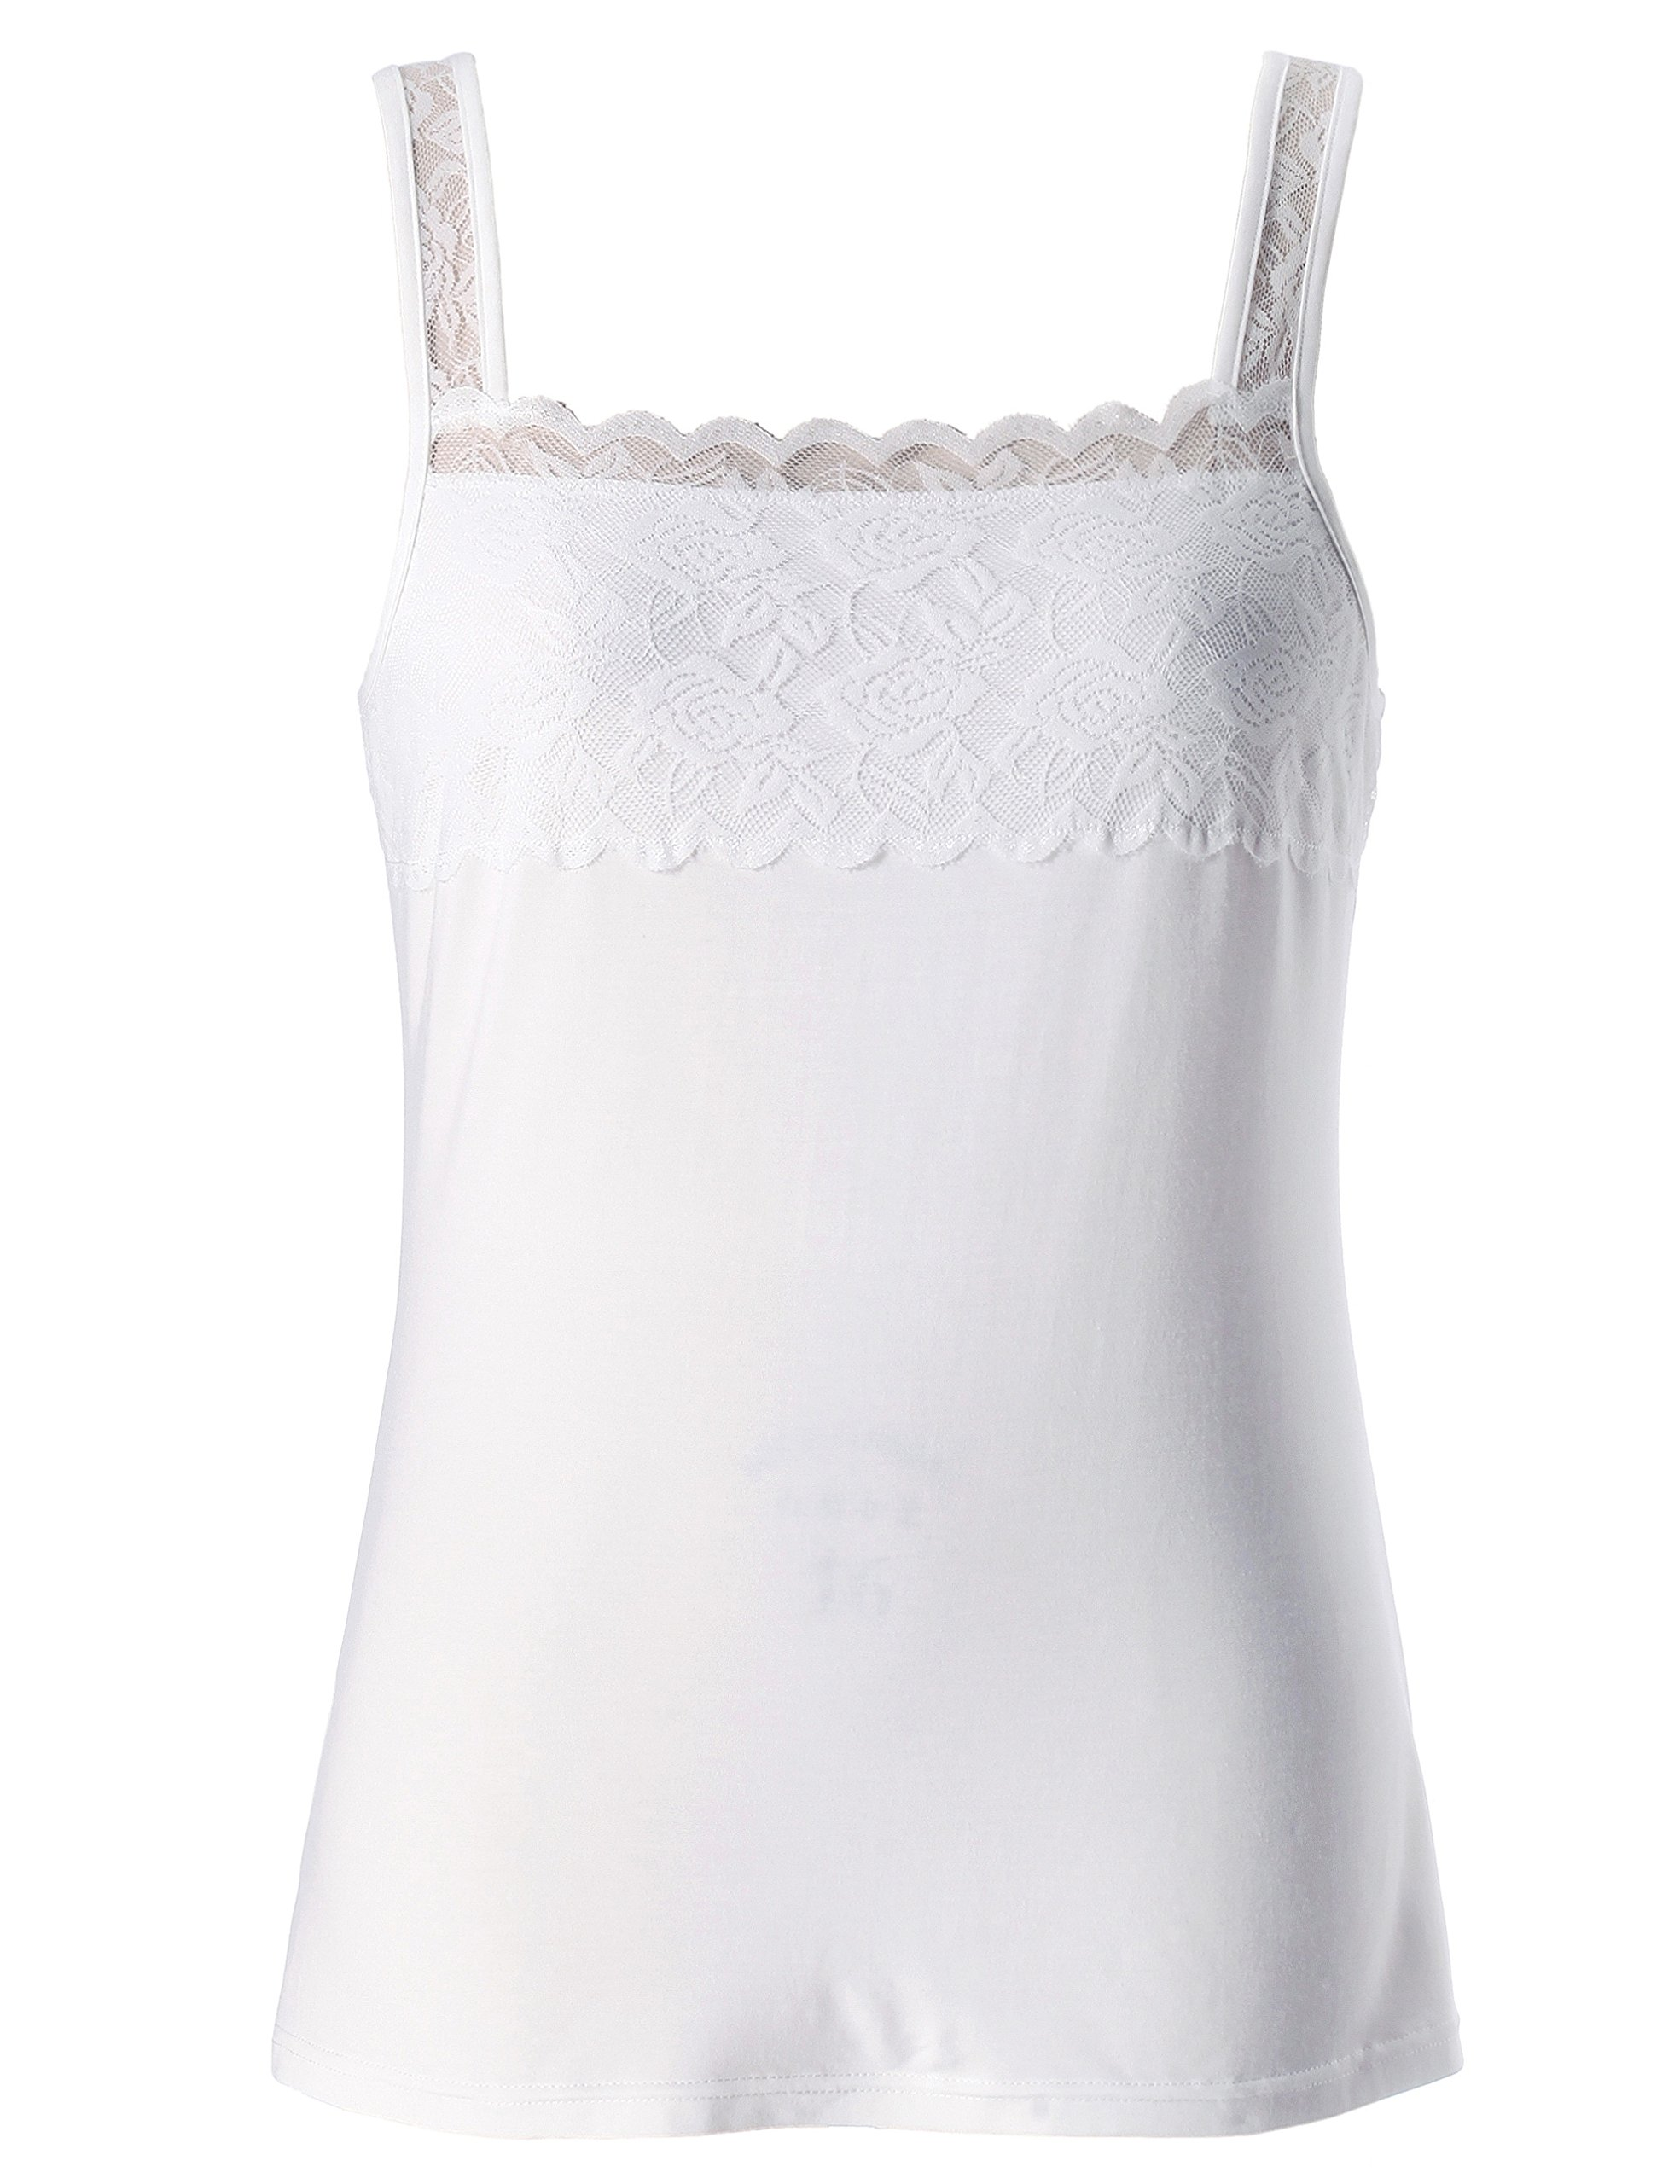 Chicwe Women's Plus Size Stretch Modal Camisole Top with Lace Square Neck White 4X